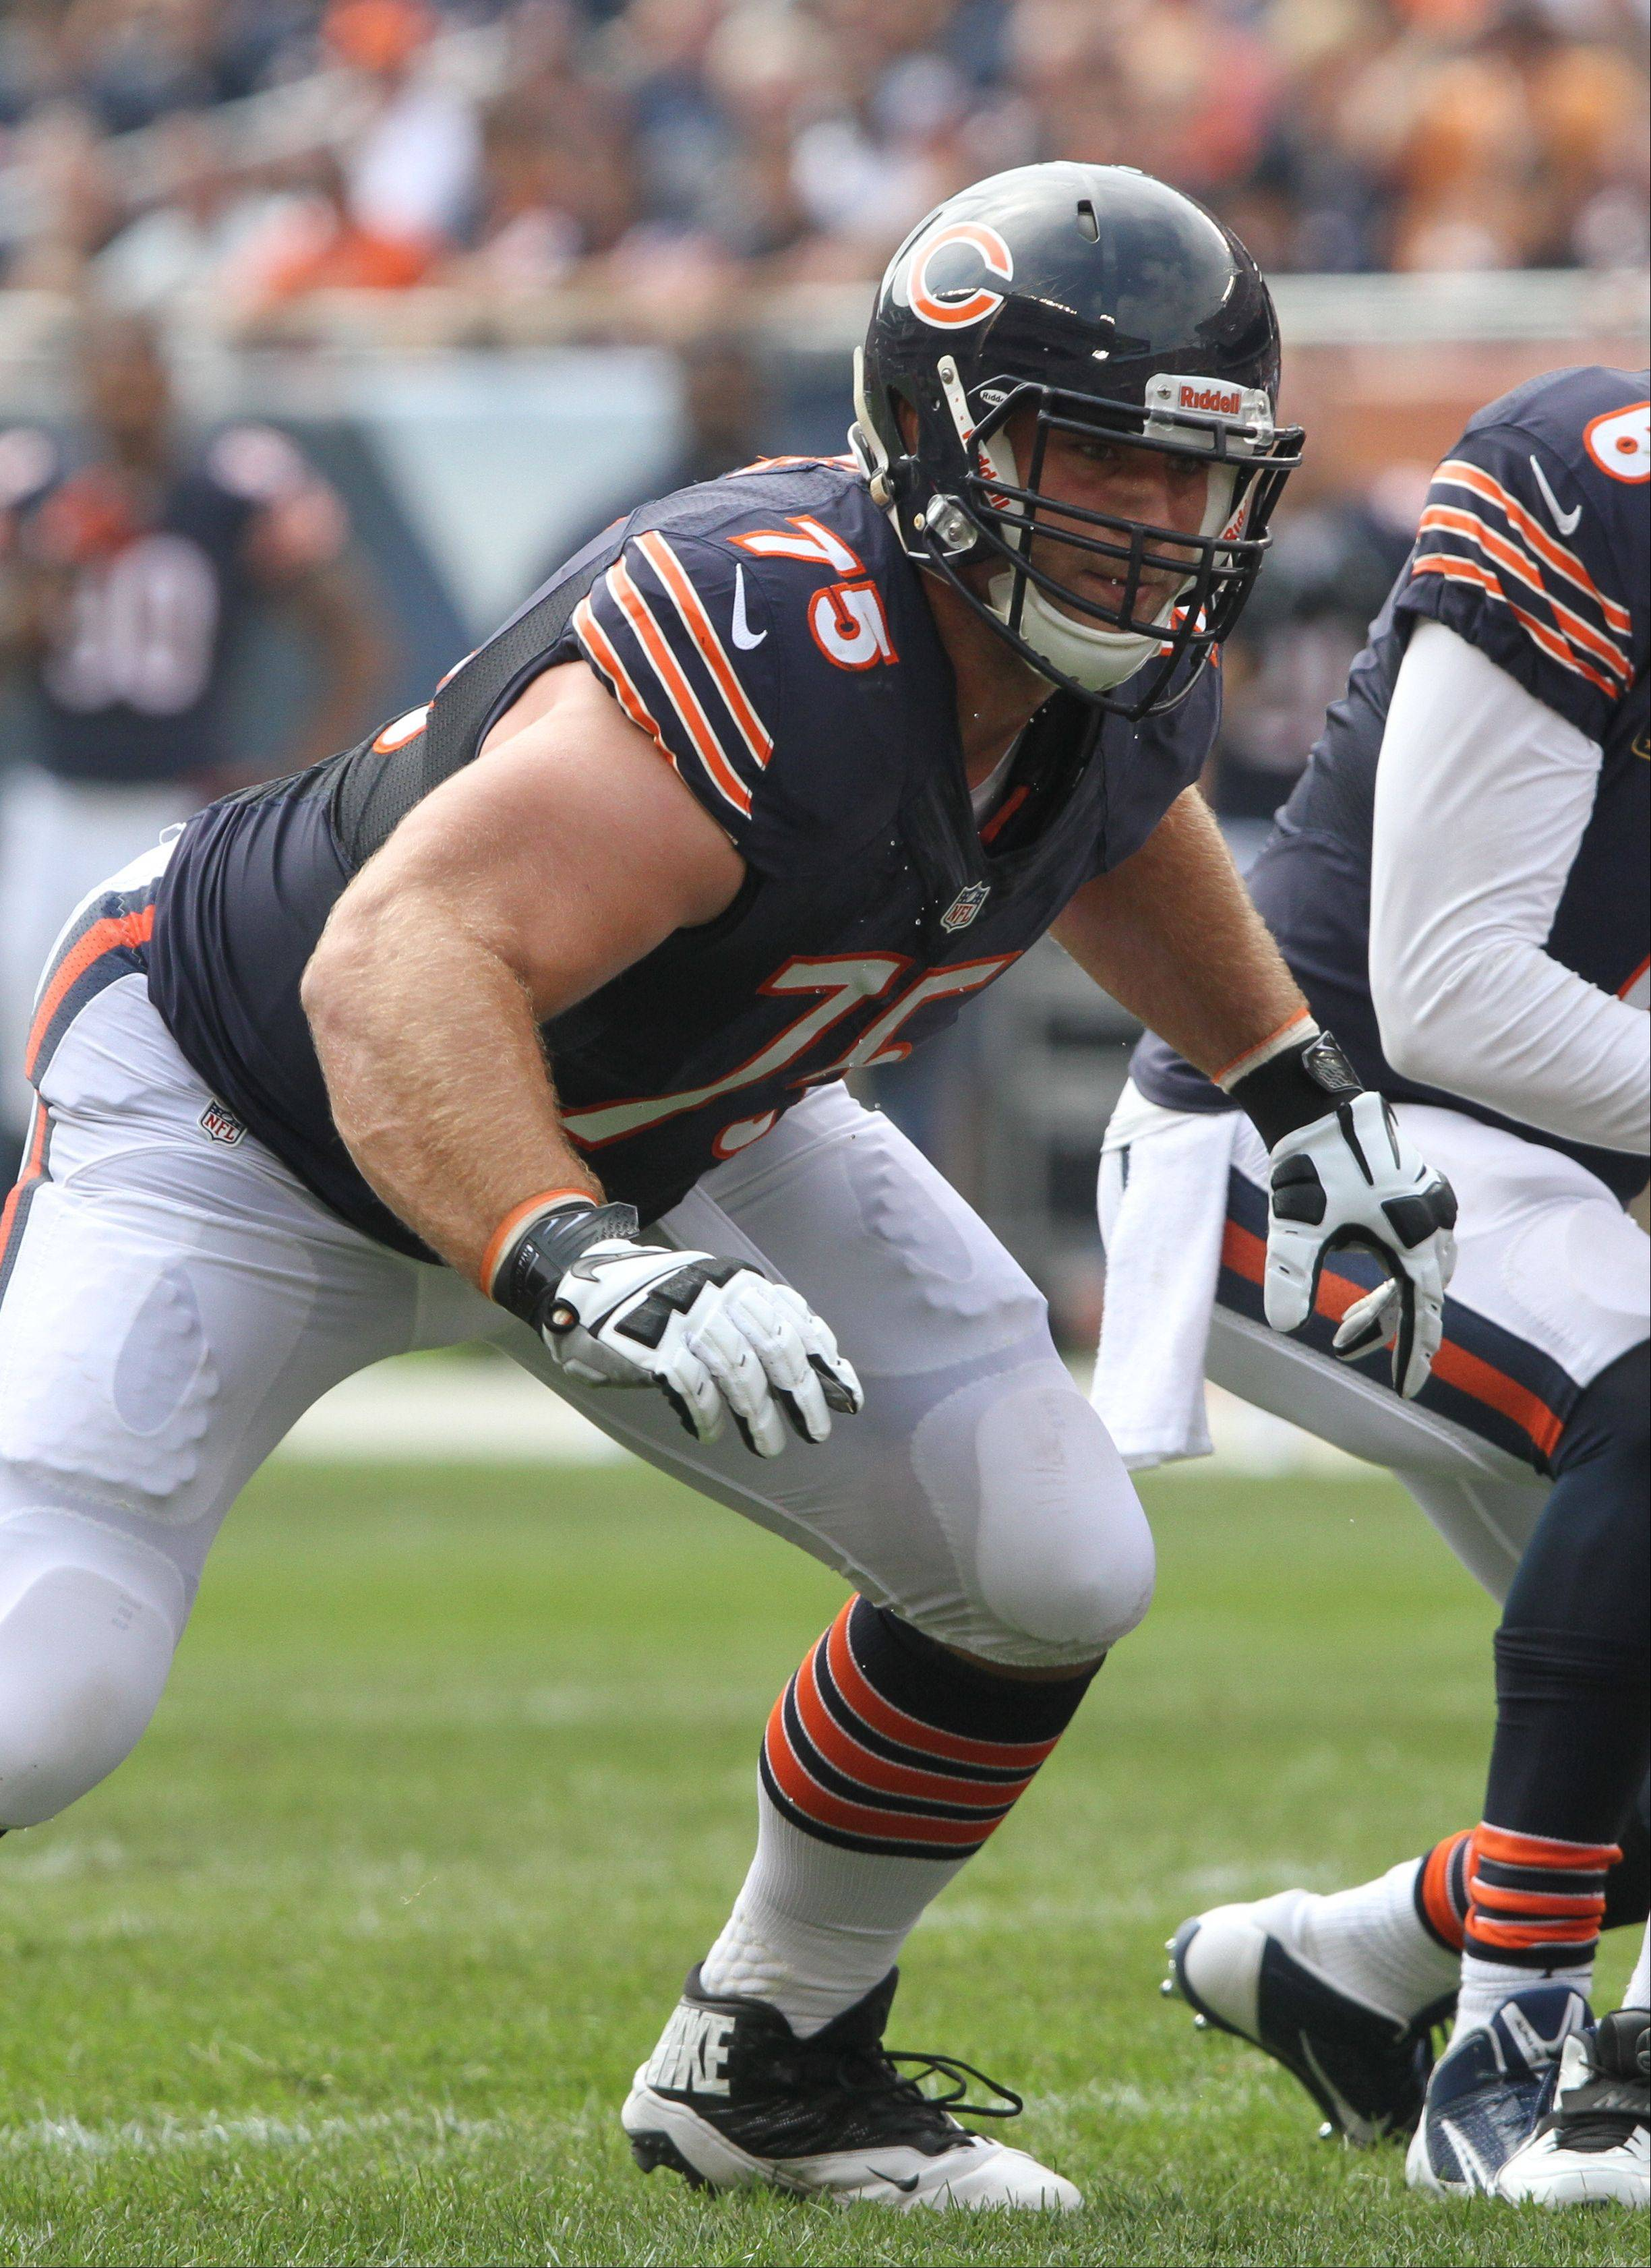 Bears offensive guard Kyle Long blocks during their opening day game against the Cincinnati Bengals. Long has proven to be a quick study, but the rookie will have his hands full today against the Lioins' Ndamukong Suh and Nick Fairly.